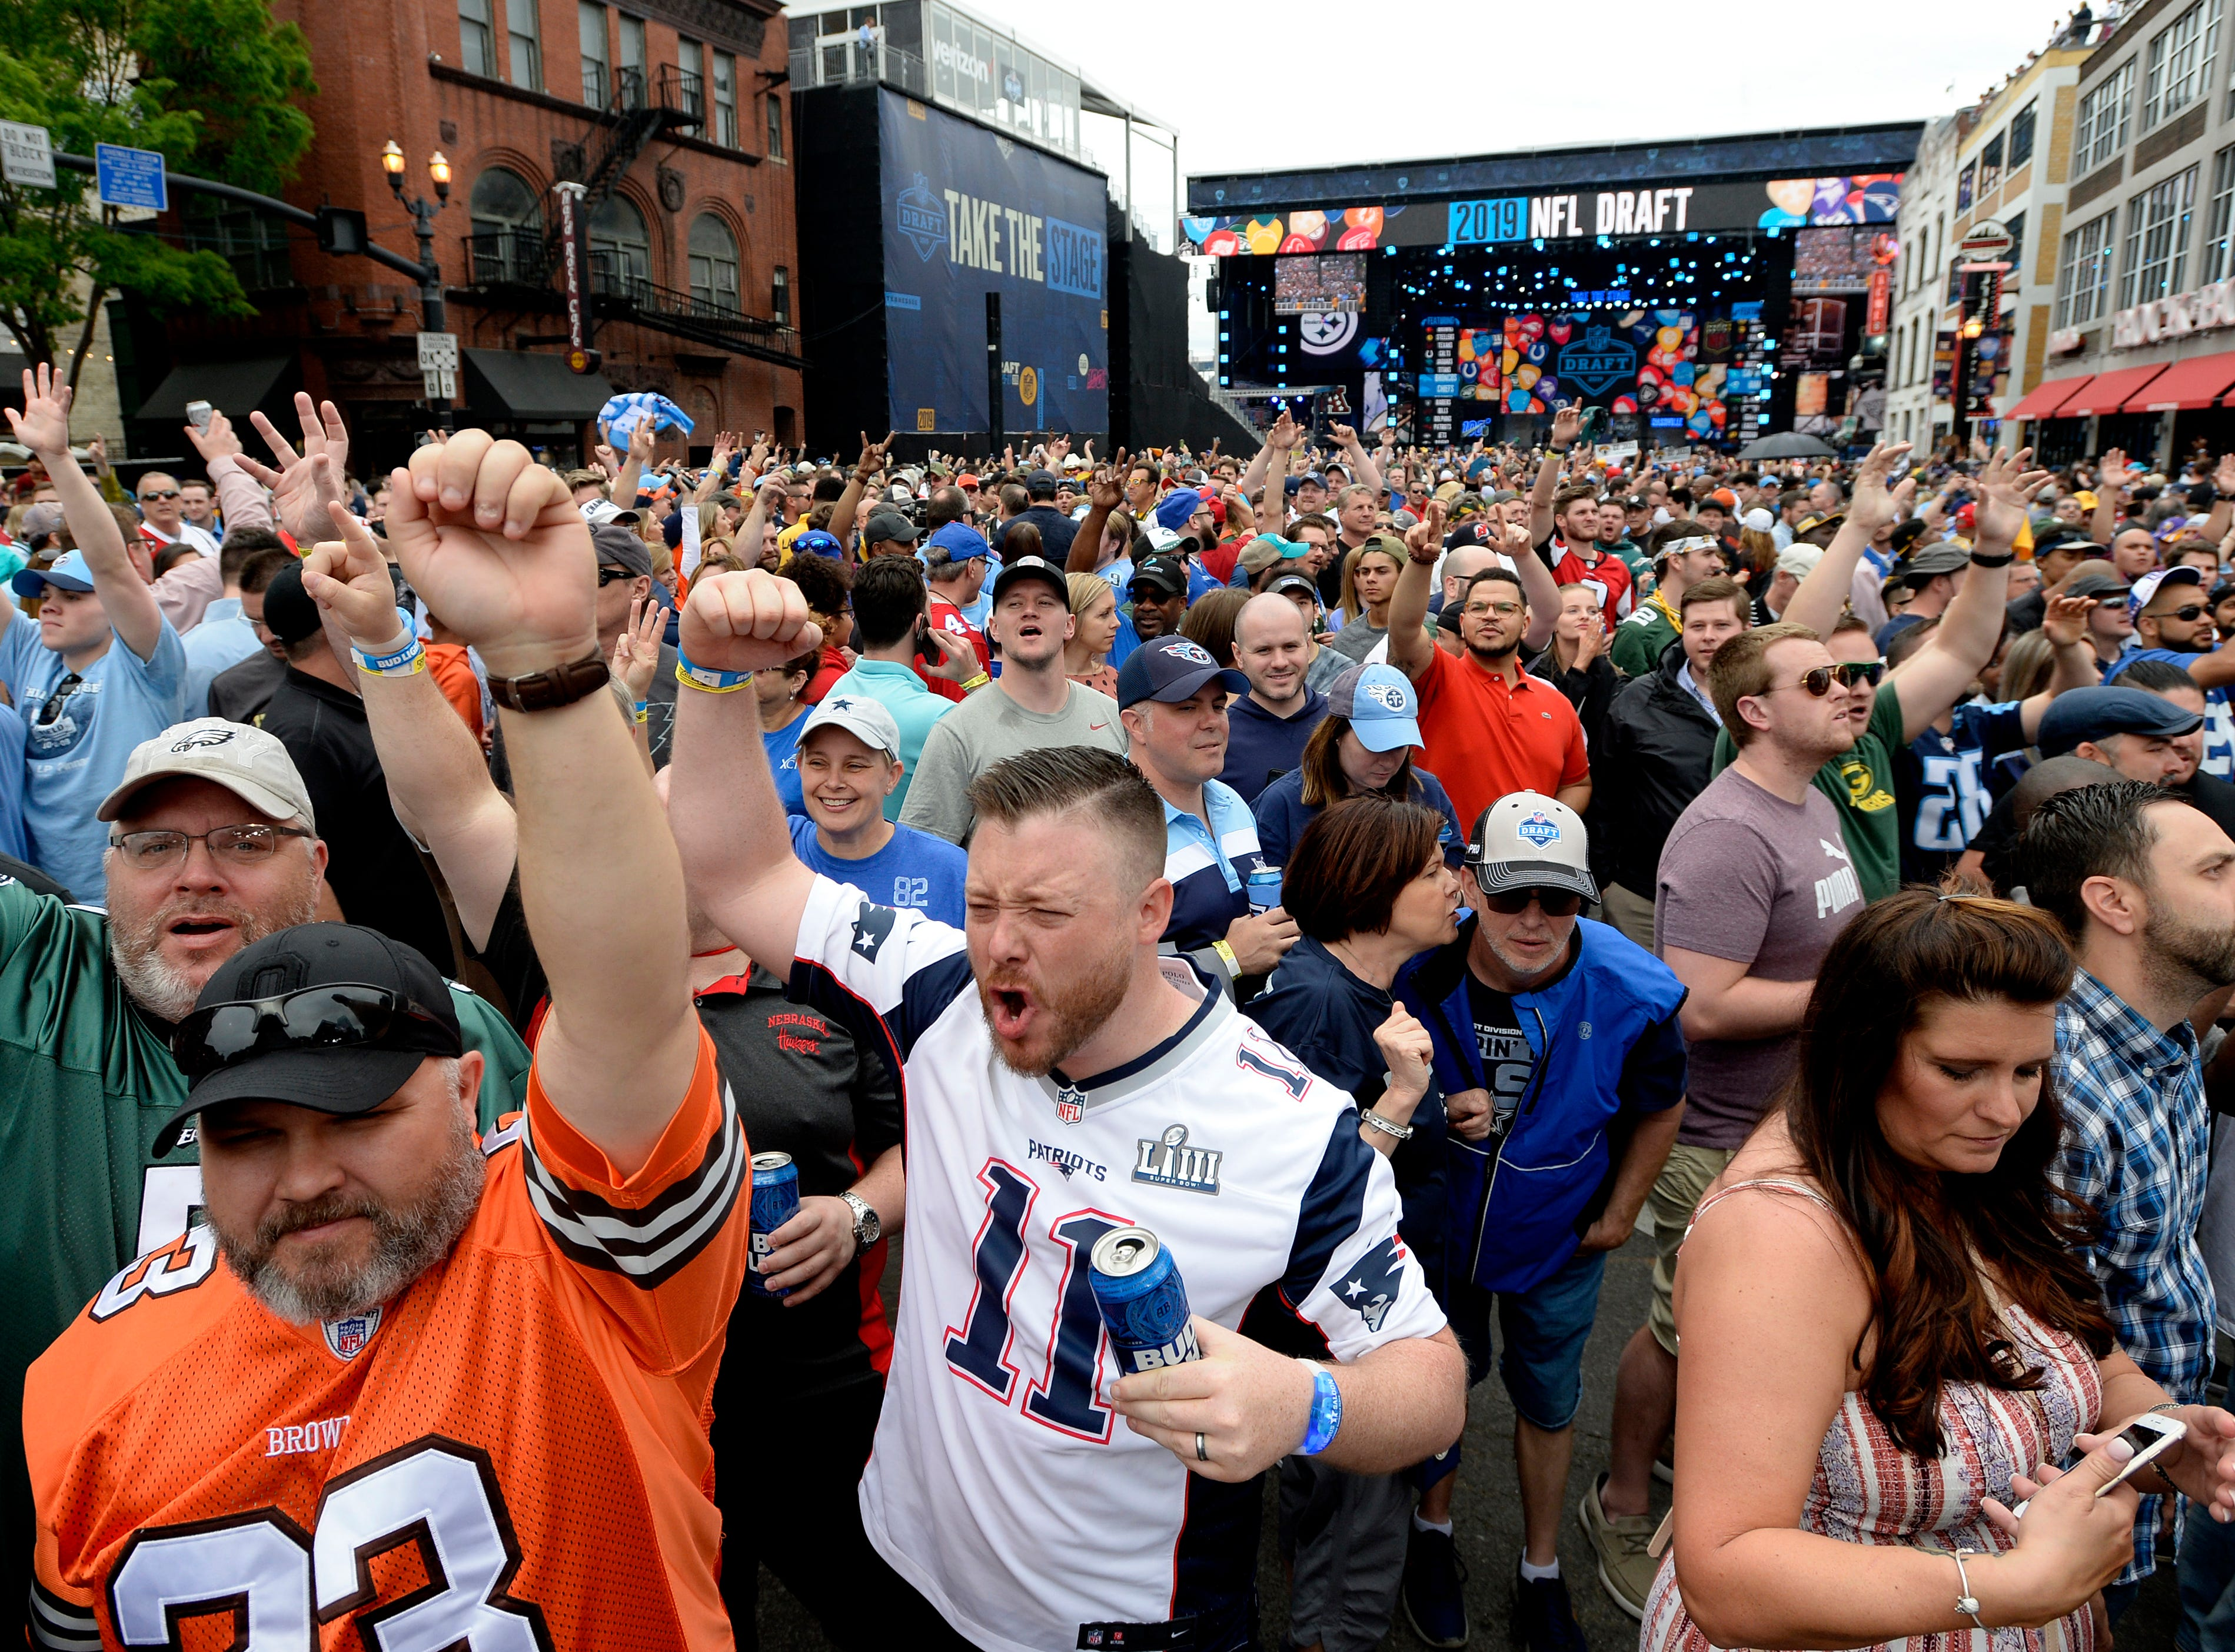 Fans cheer on Lower Broadway as they wait for the start of the NFL Draft on Thursday, April 25, 2019, in Nashville, Tenn.